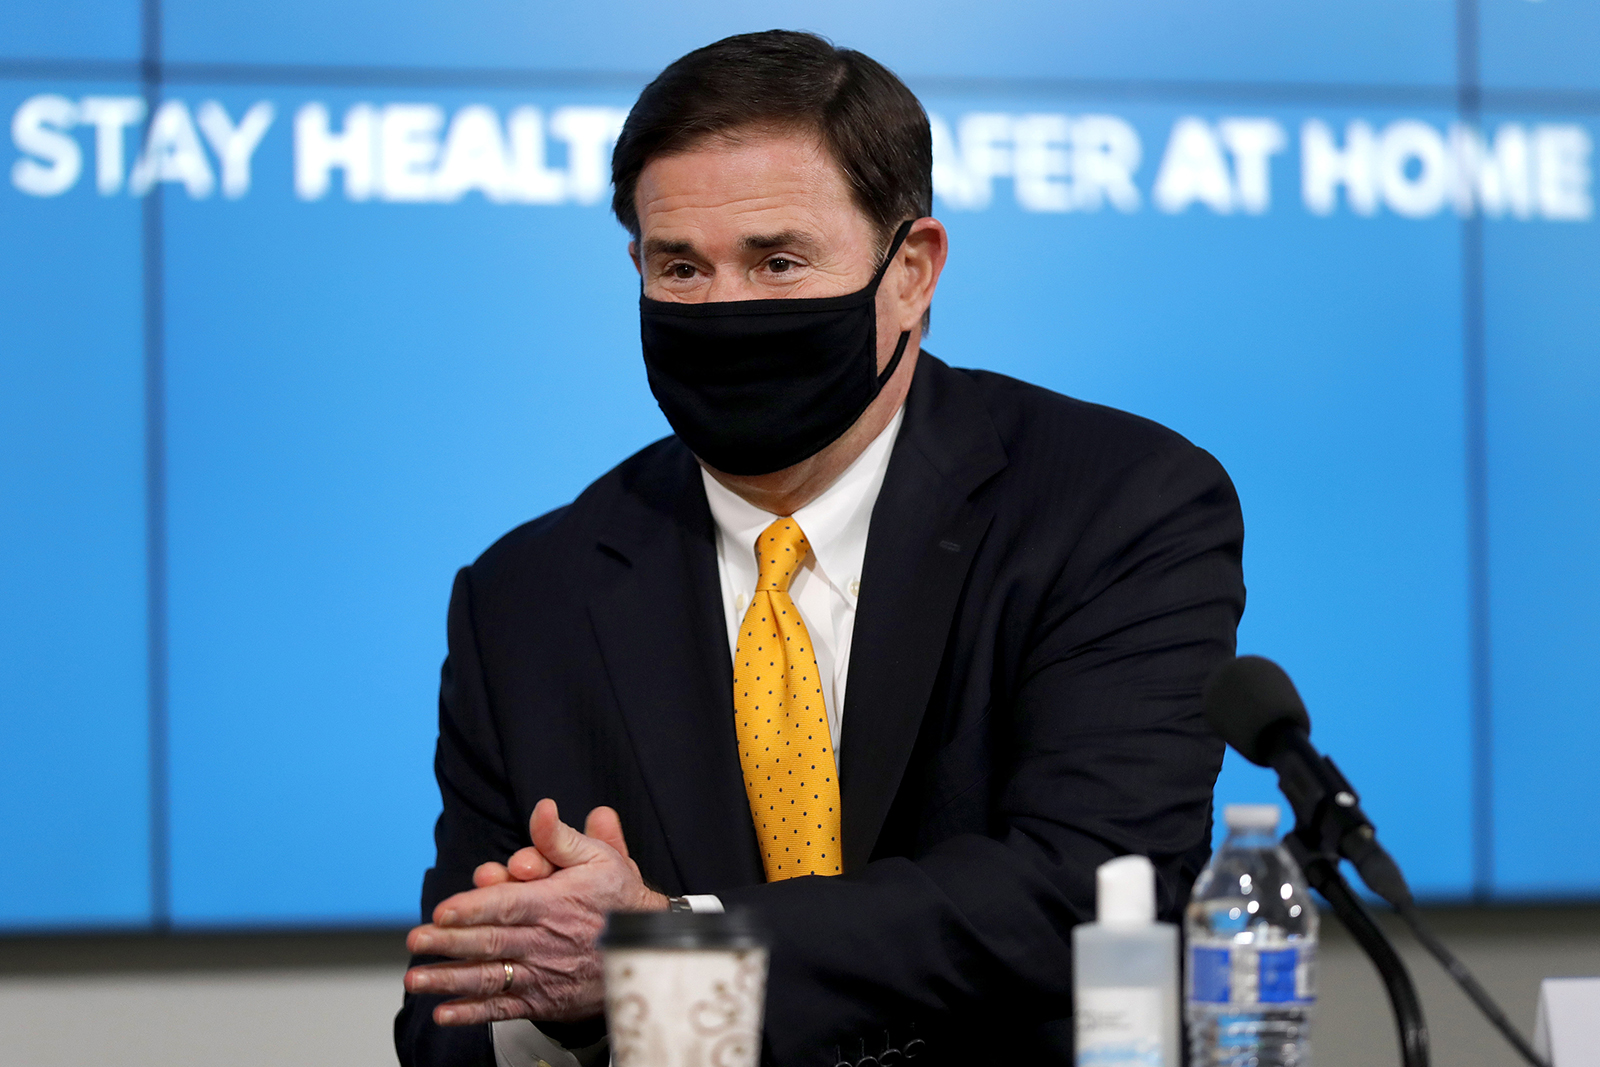 In this July 23, 2020 file photo, Arizona Republican Gov. Doug Ducey applies hand sanitizer prior to giving the latest Arizona coronavirus update during a news conference in Phoenix.